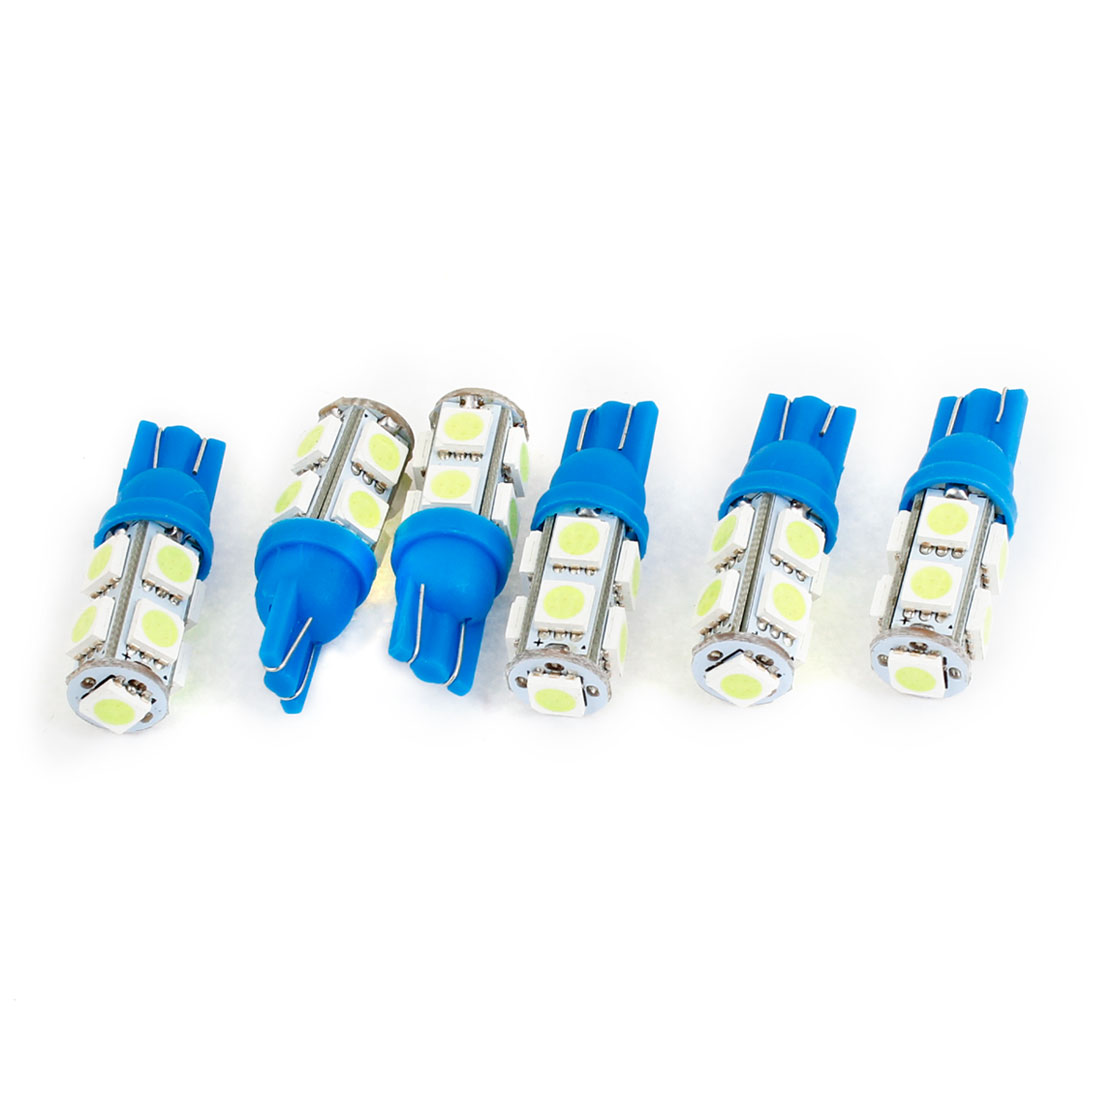 6PCS T10 Ice Blue 9 LED 5050 SMD Dashboard Side Marker Light Bulb for Car